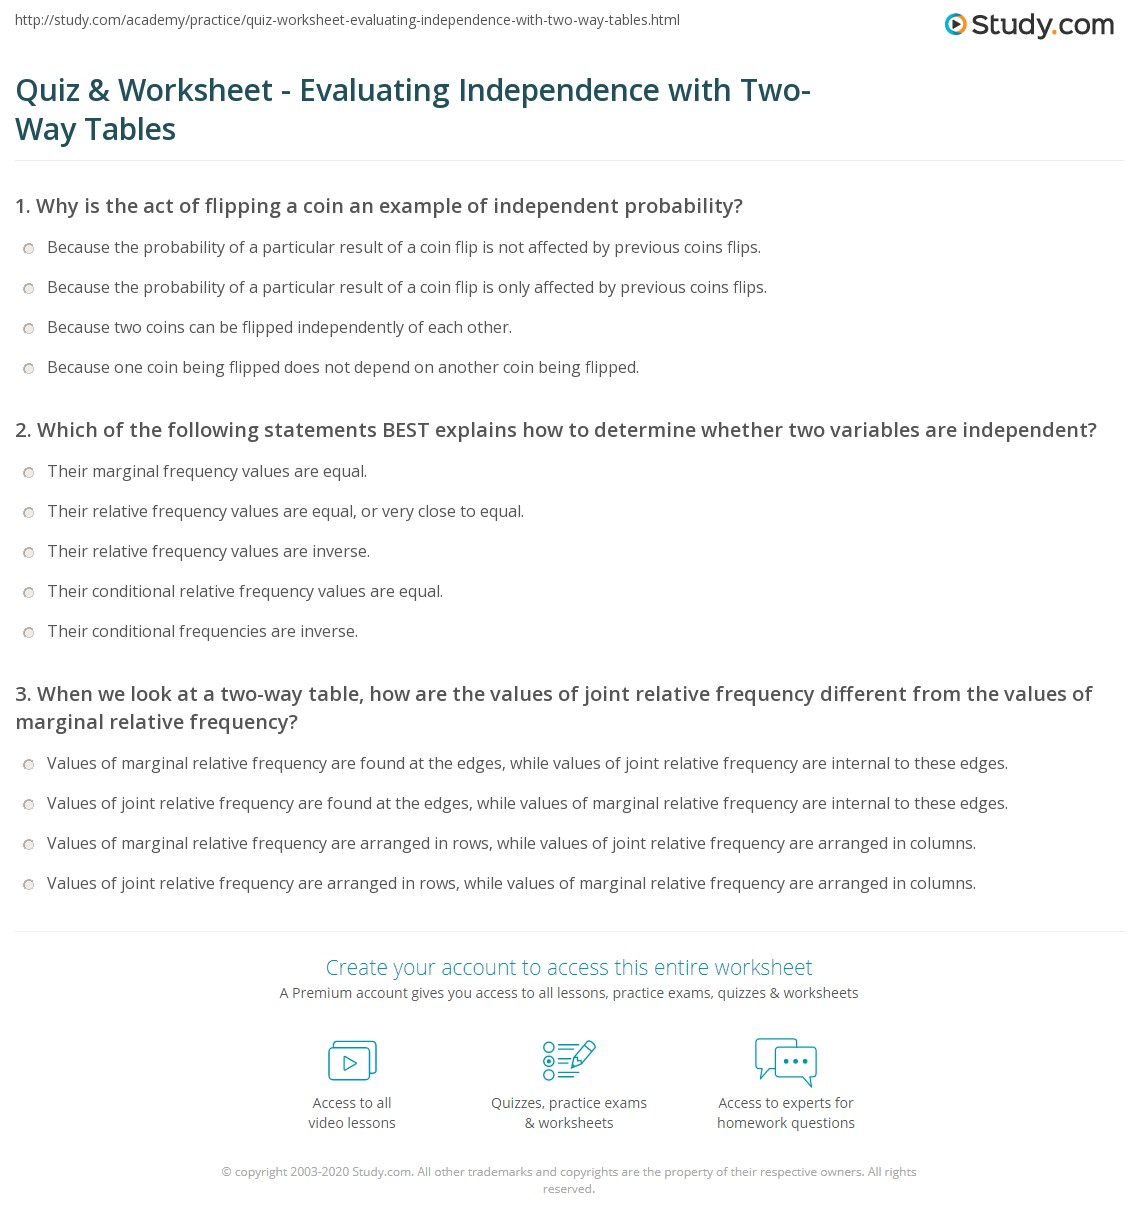 Quiz Worksheet Evaluating Independence With Two Way